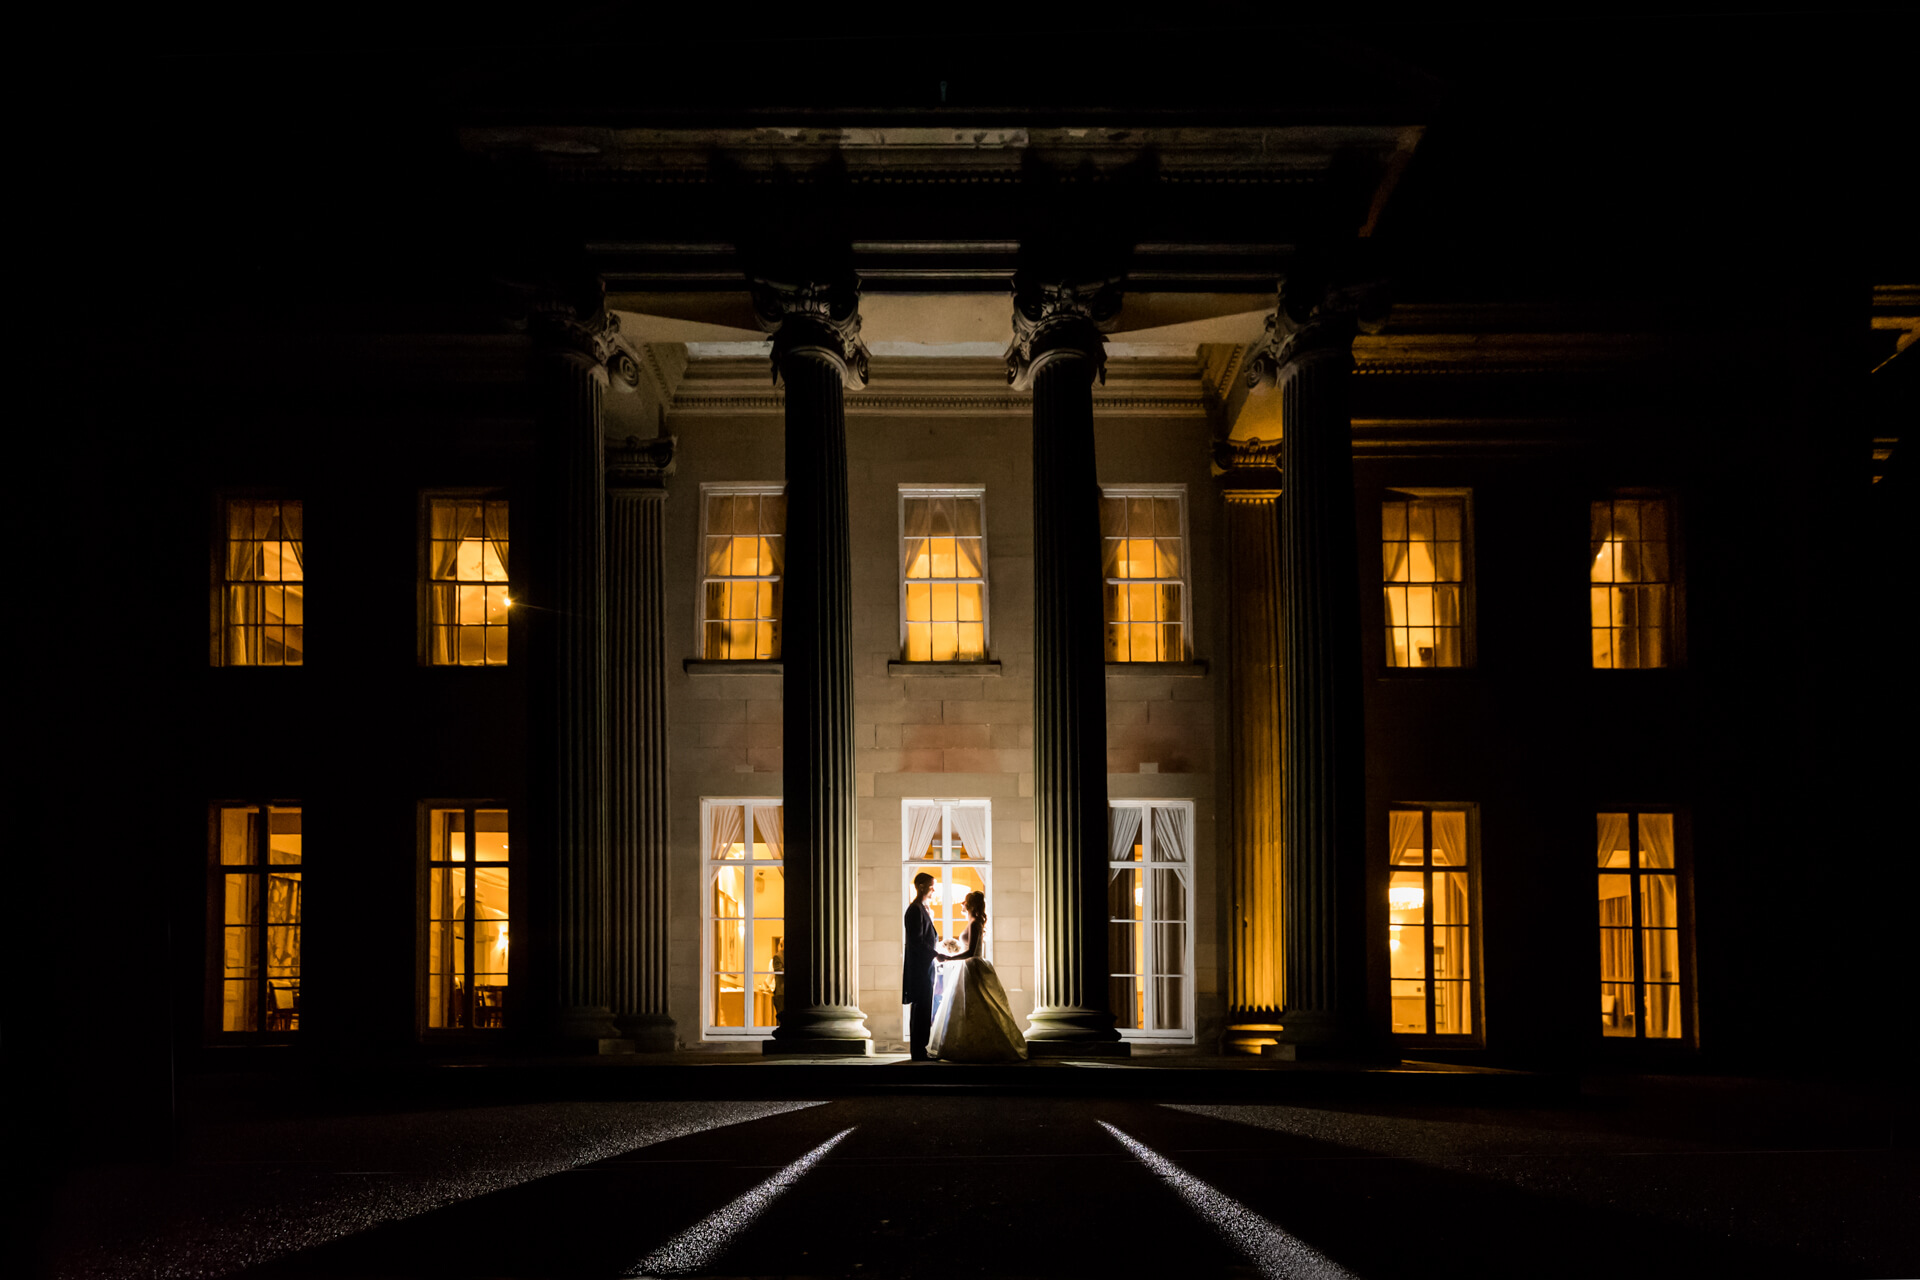 silhouette of a wedding couple standing I'm front of a mansion at night